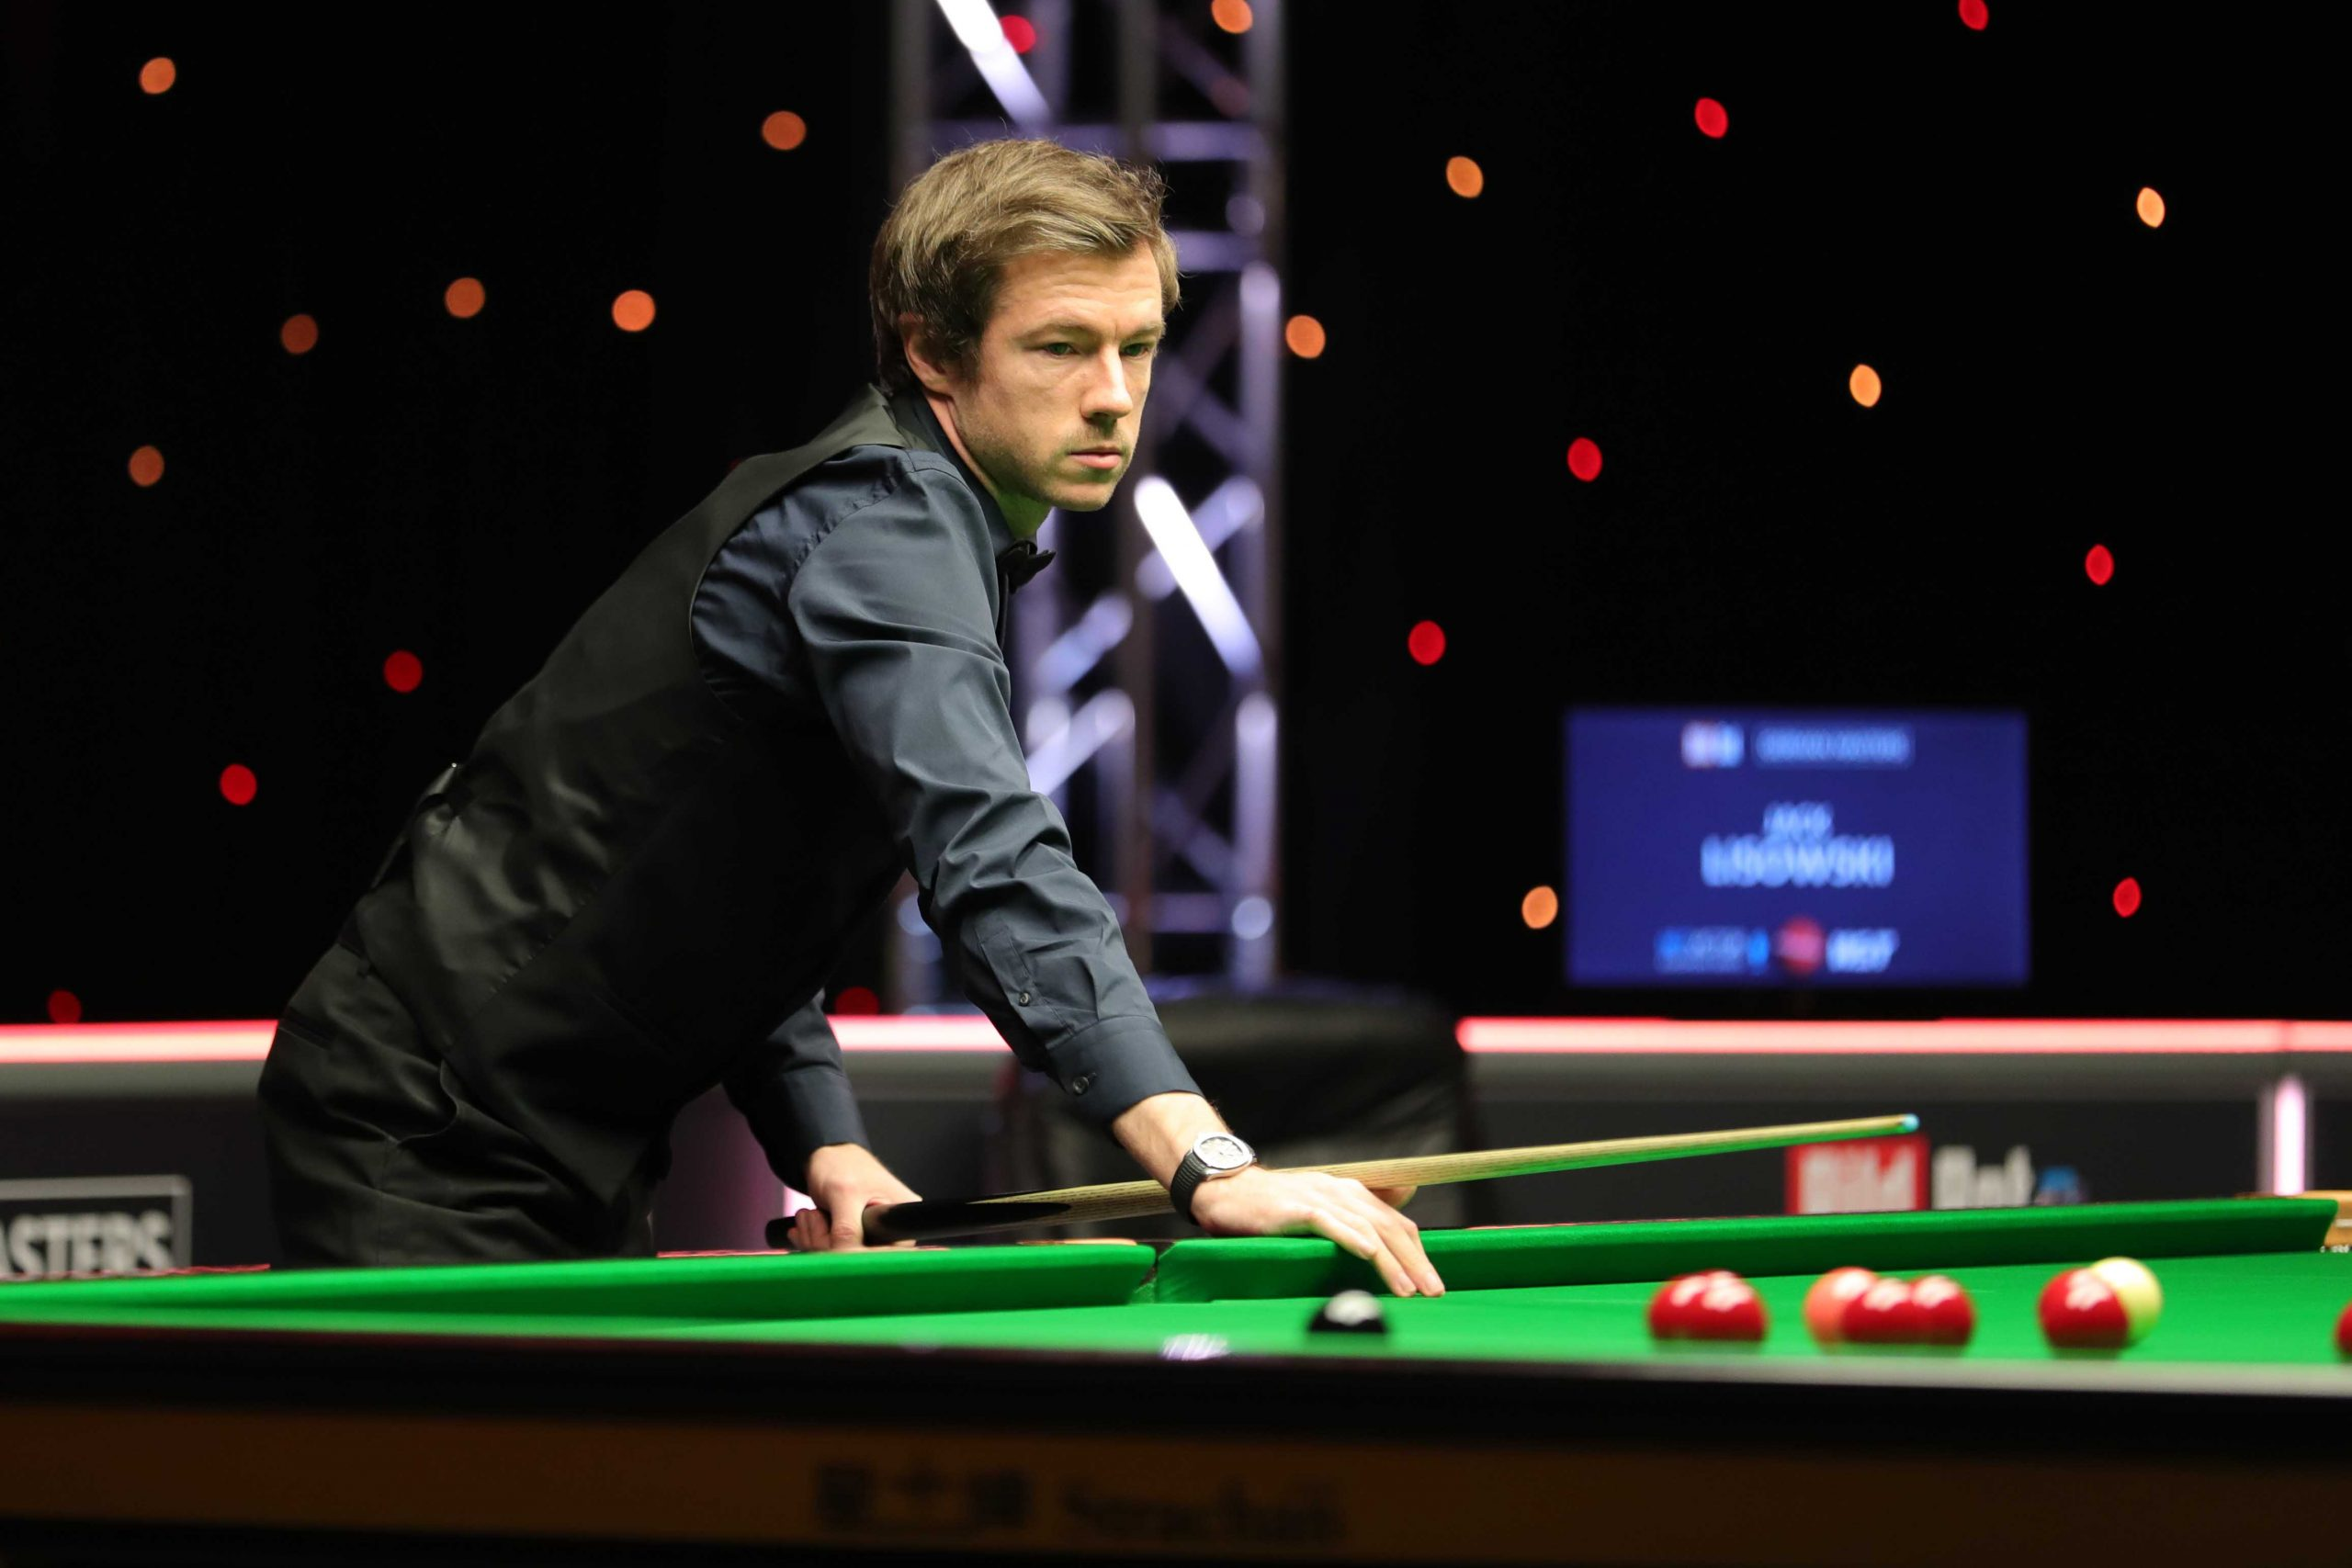 Lisowski Sets Up Trump Showdown World Snooker